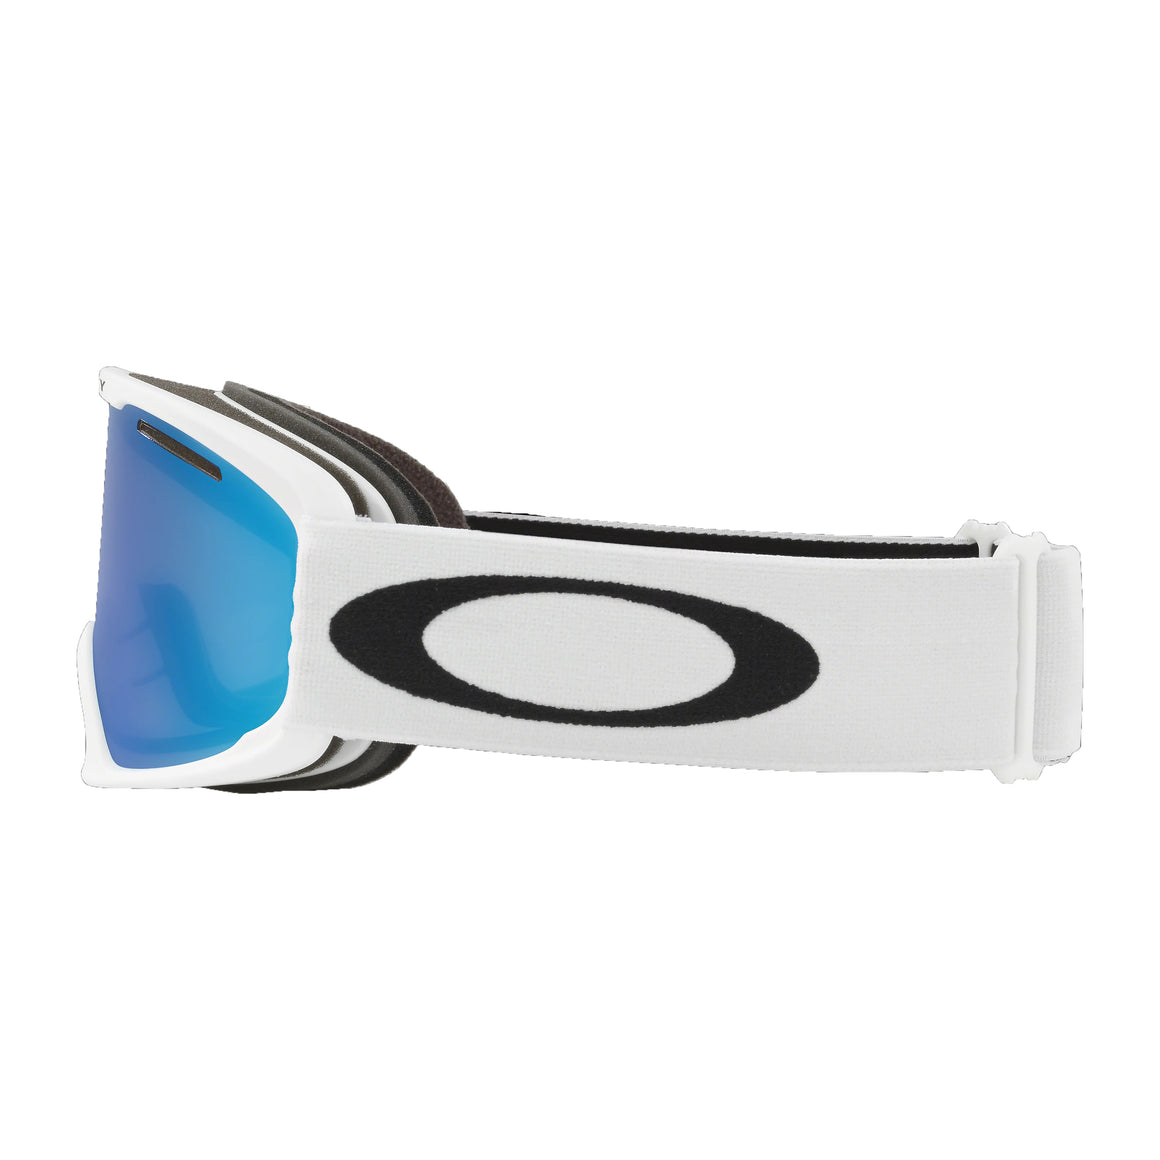 O Frame 2.0 Pro XL Goggles for Men in Matte White Violet Iridium